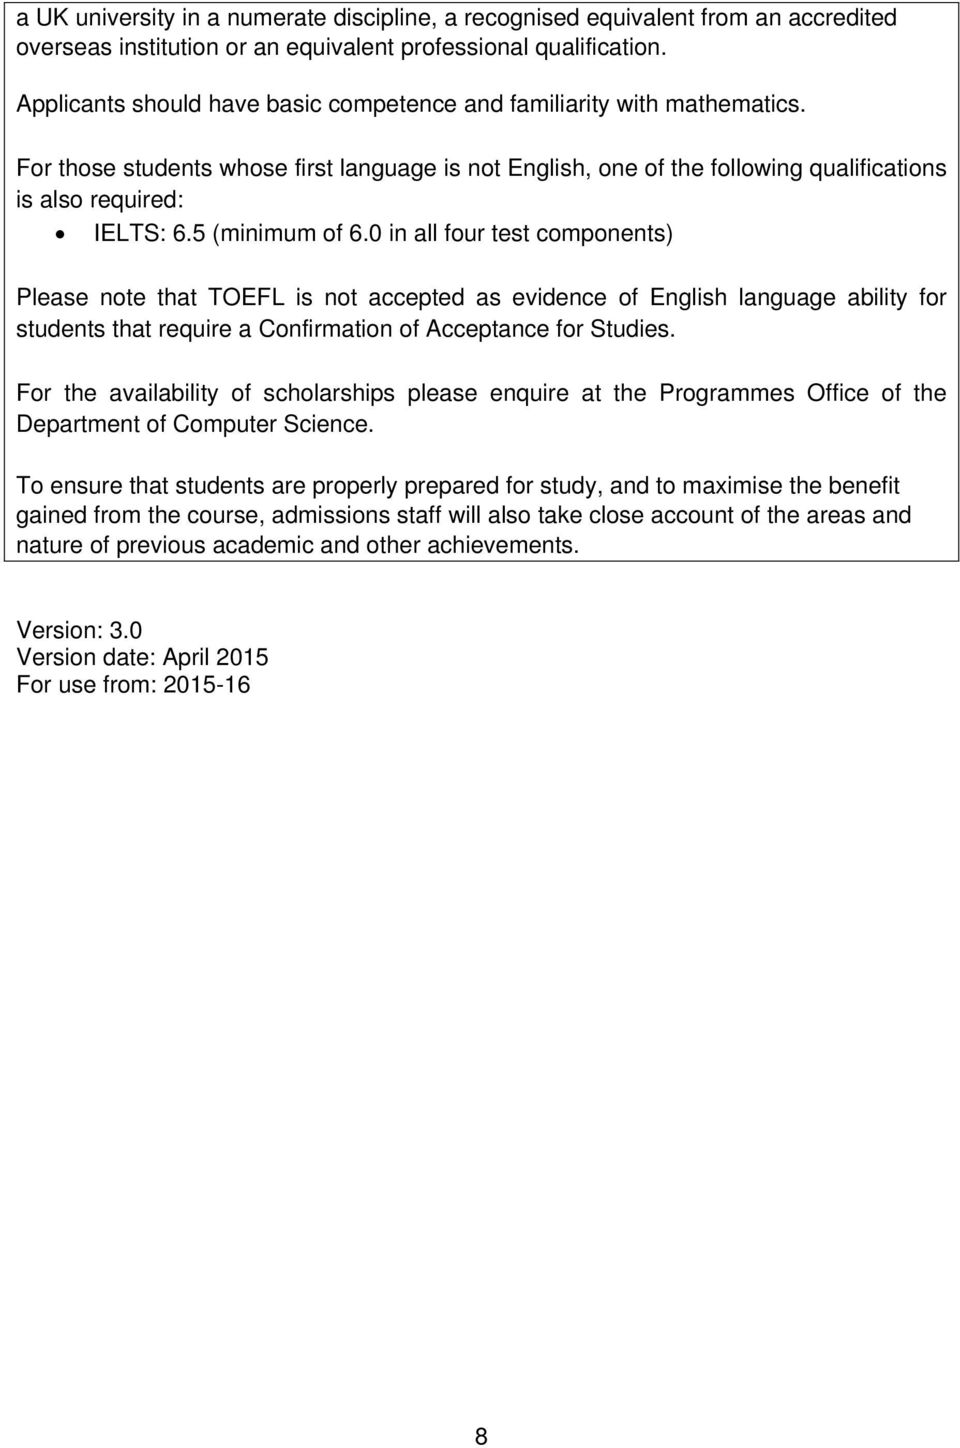 5 (minimum of 6.0 in all four test components) Please note that TOEFL is not accepted as evidence of English language ability for students that require a Confirmation of Acceptance for Studies.